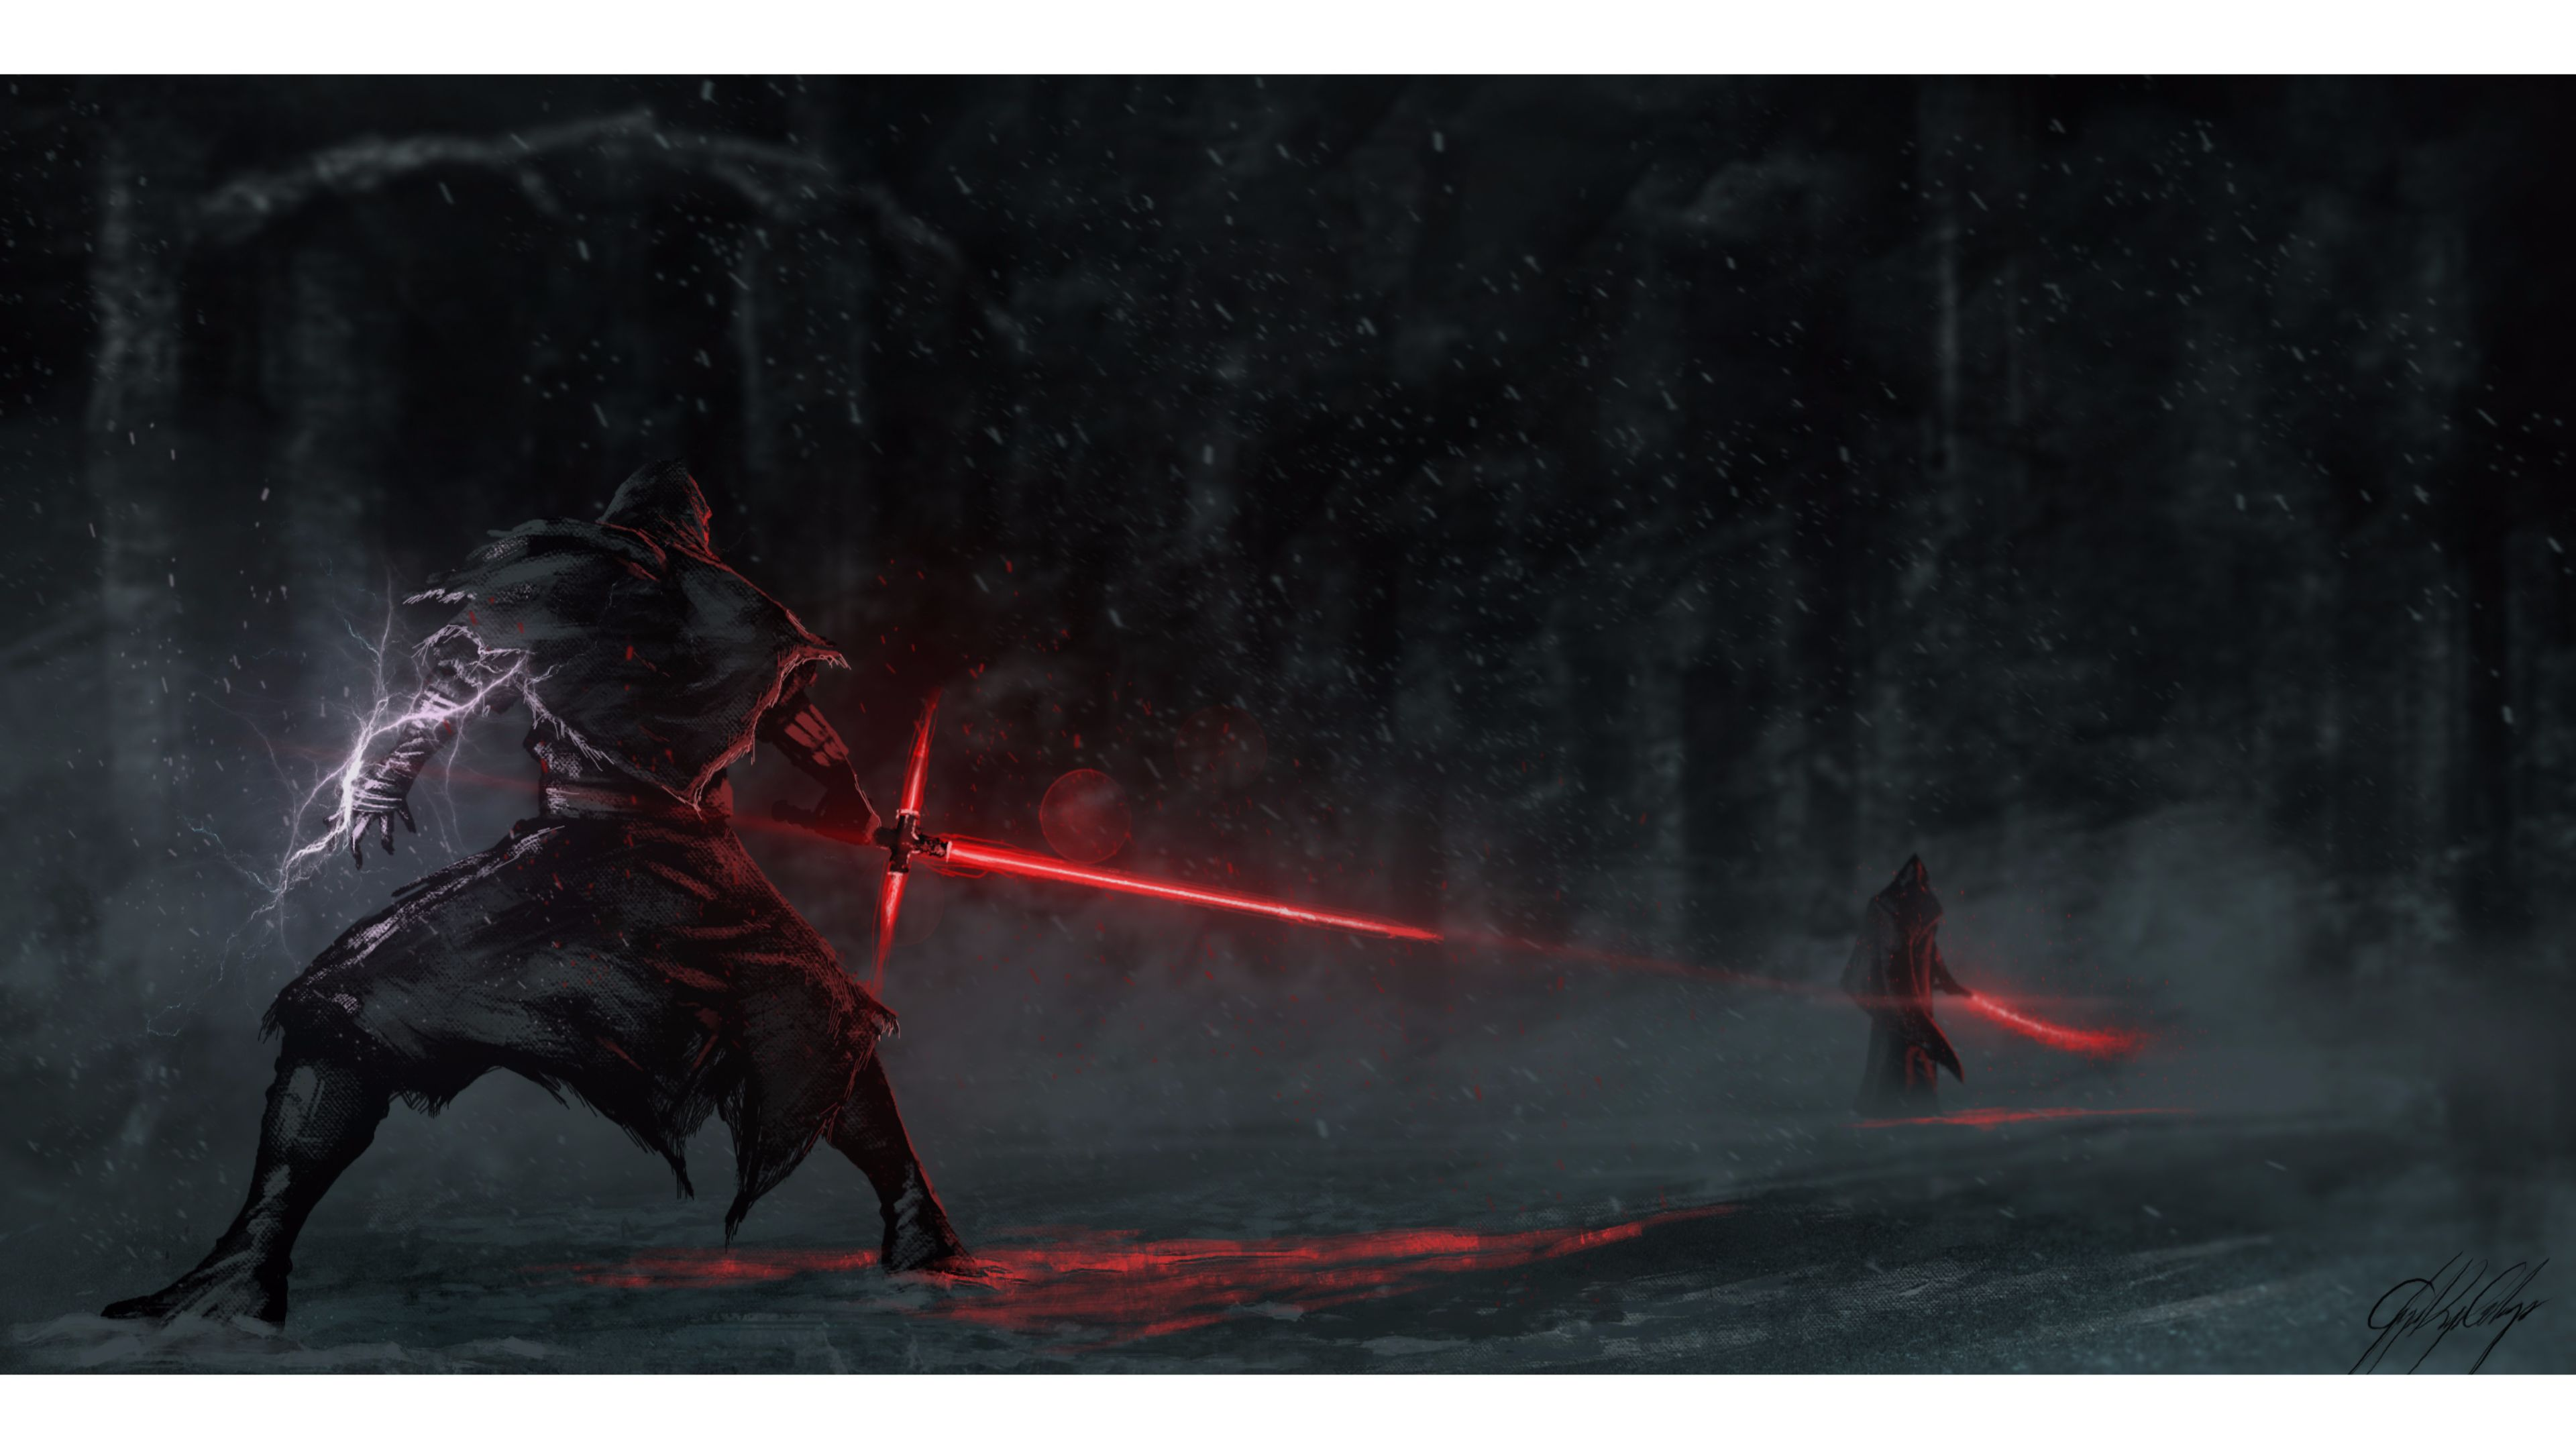 192 1928519 4k resolution star wars wallpapers for pc